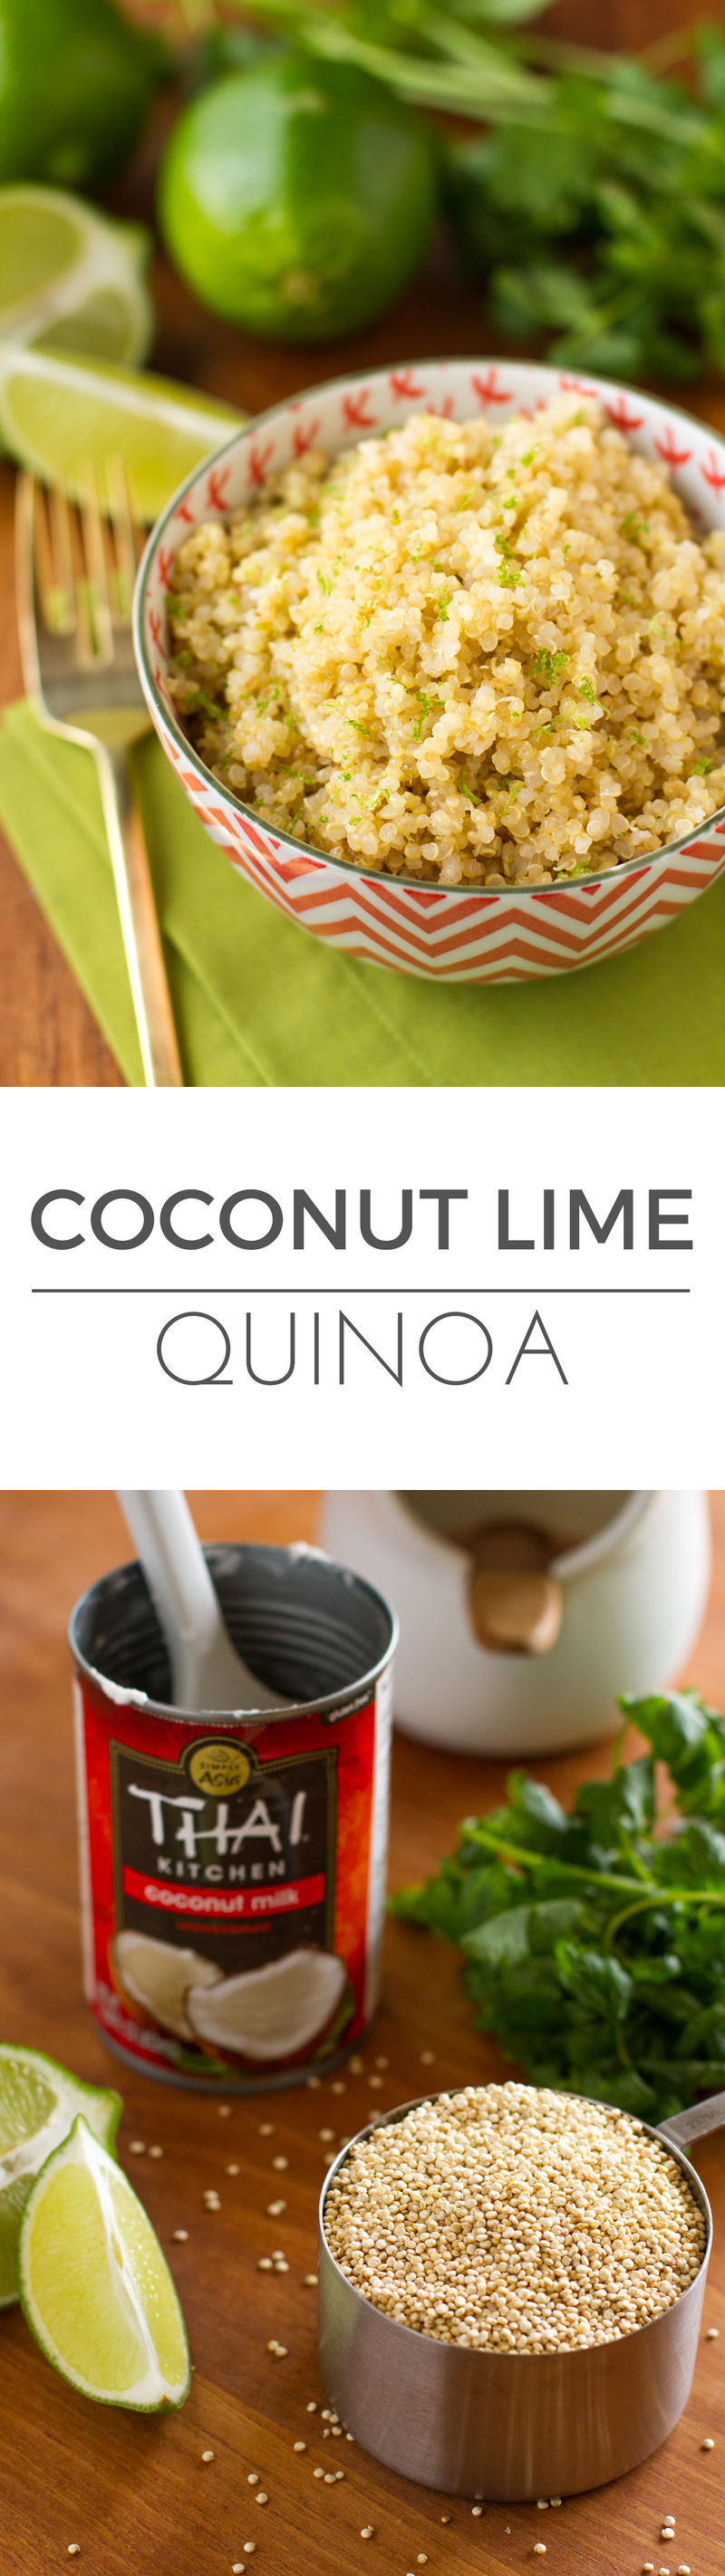 Coconut Lime Quinoa Lime Recipesquinoa Recipequinoa